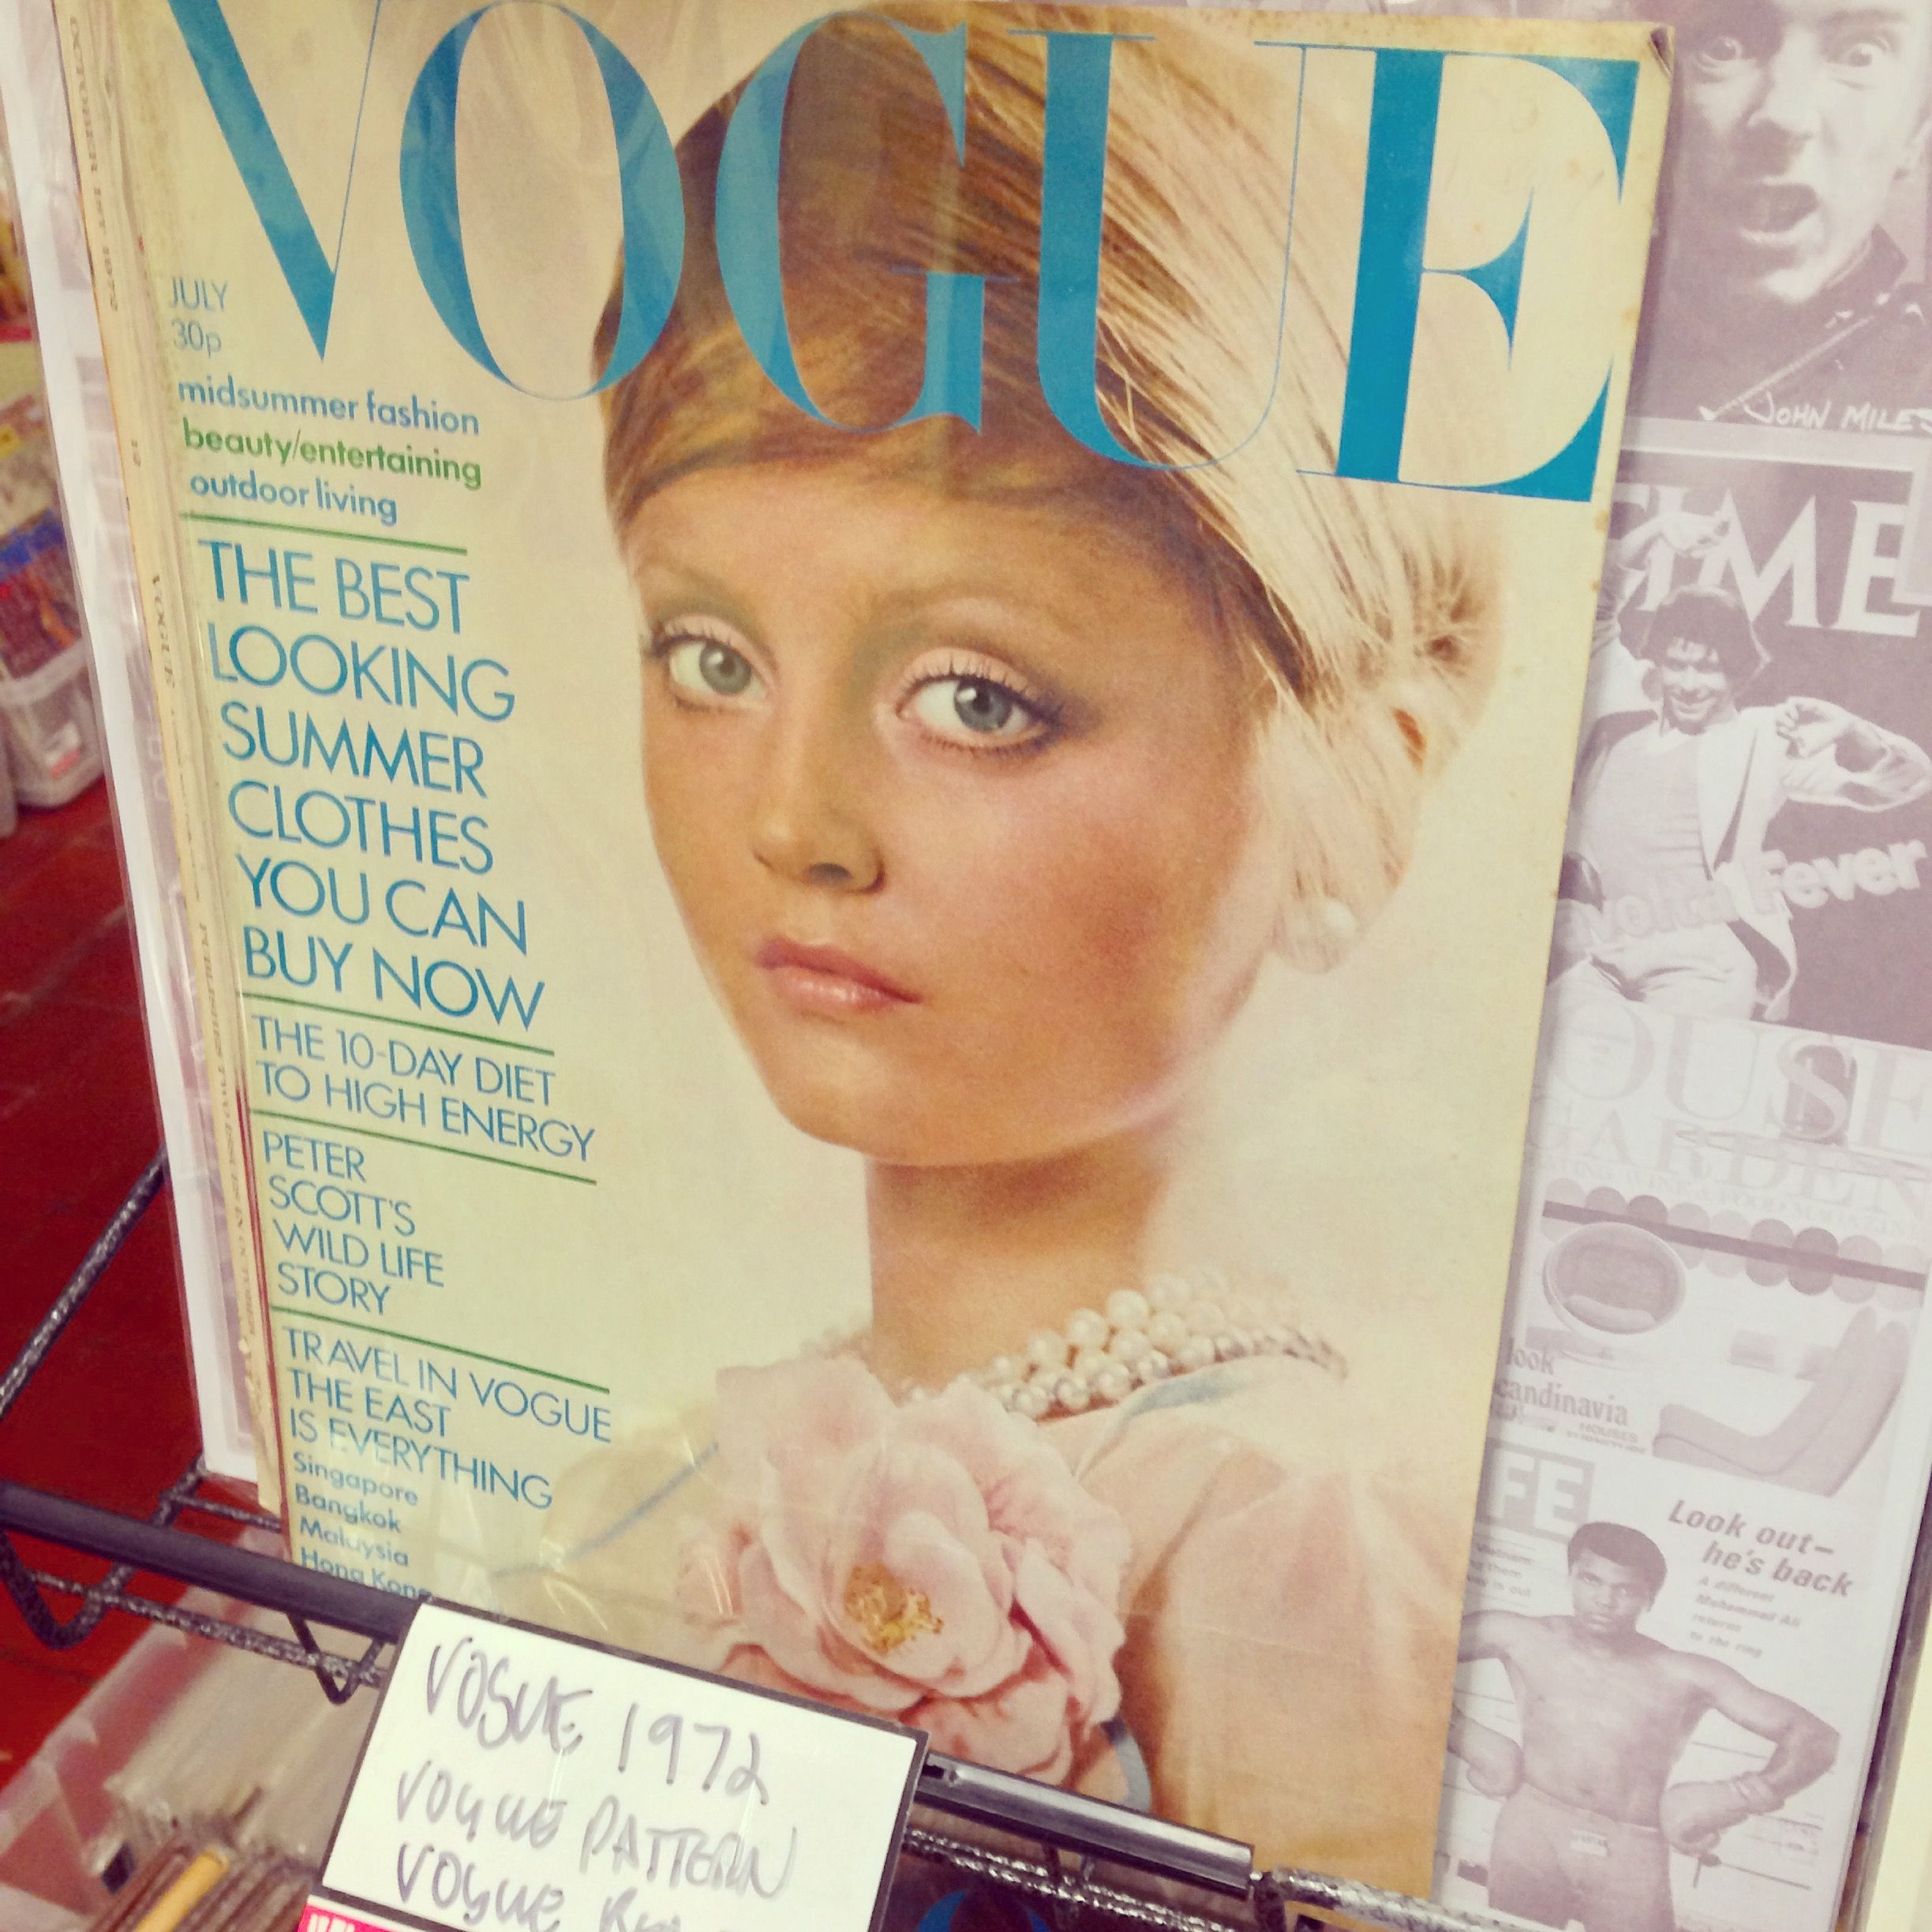 inspirational magic:) new blog post. #vogue #vintagemagazine #1972 #fashion